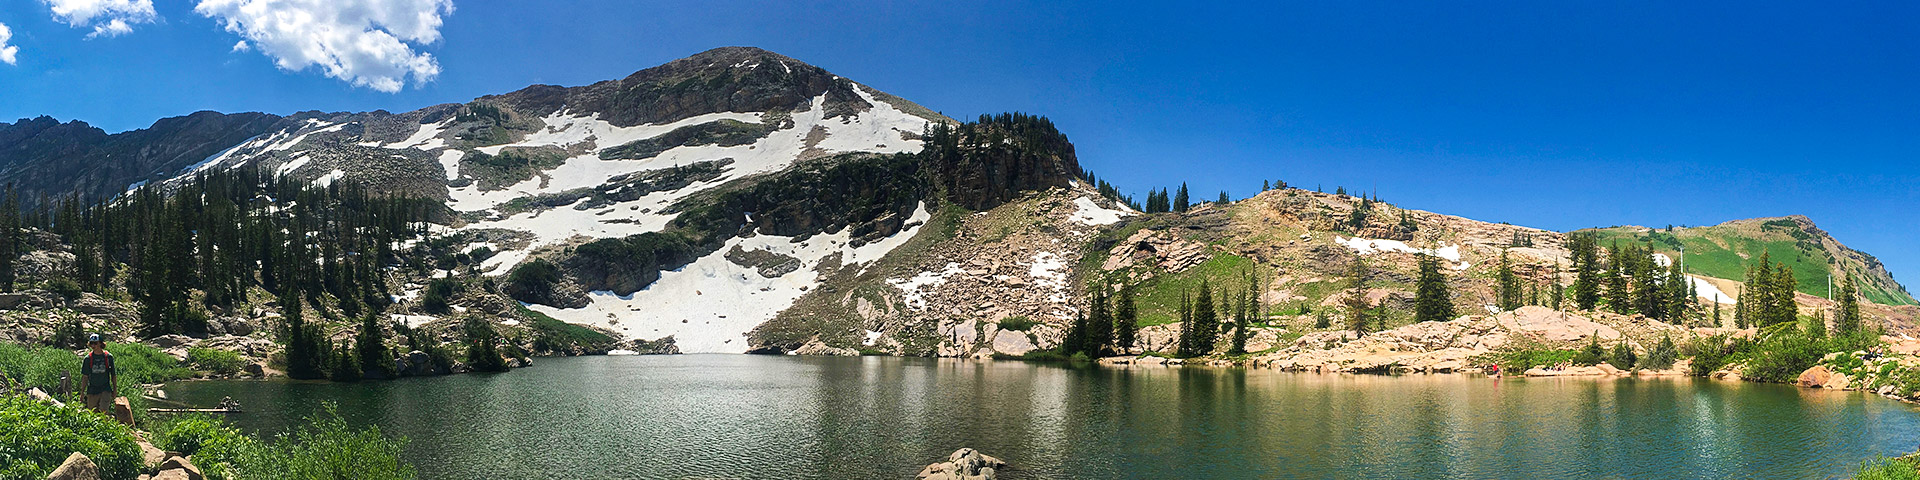 Best hikes in Salt Lake City, Utah